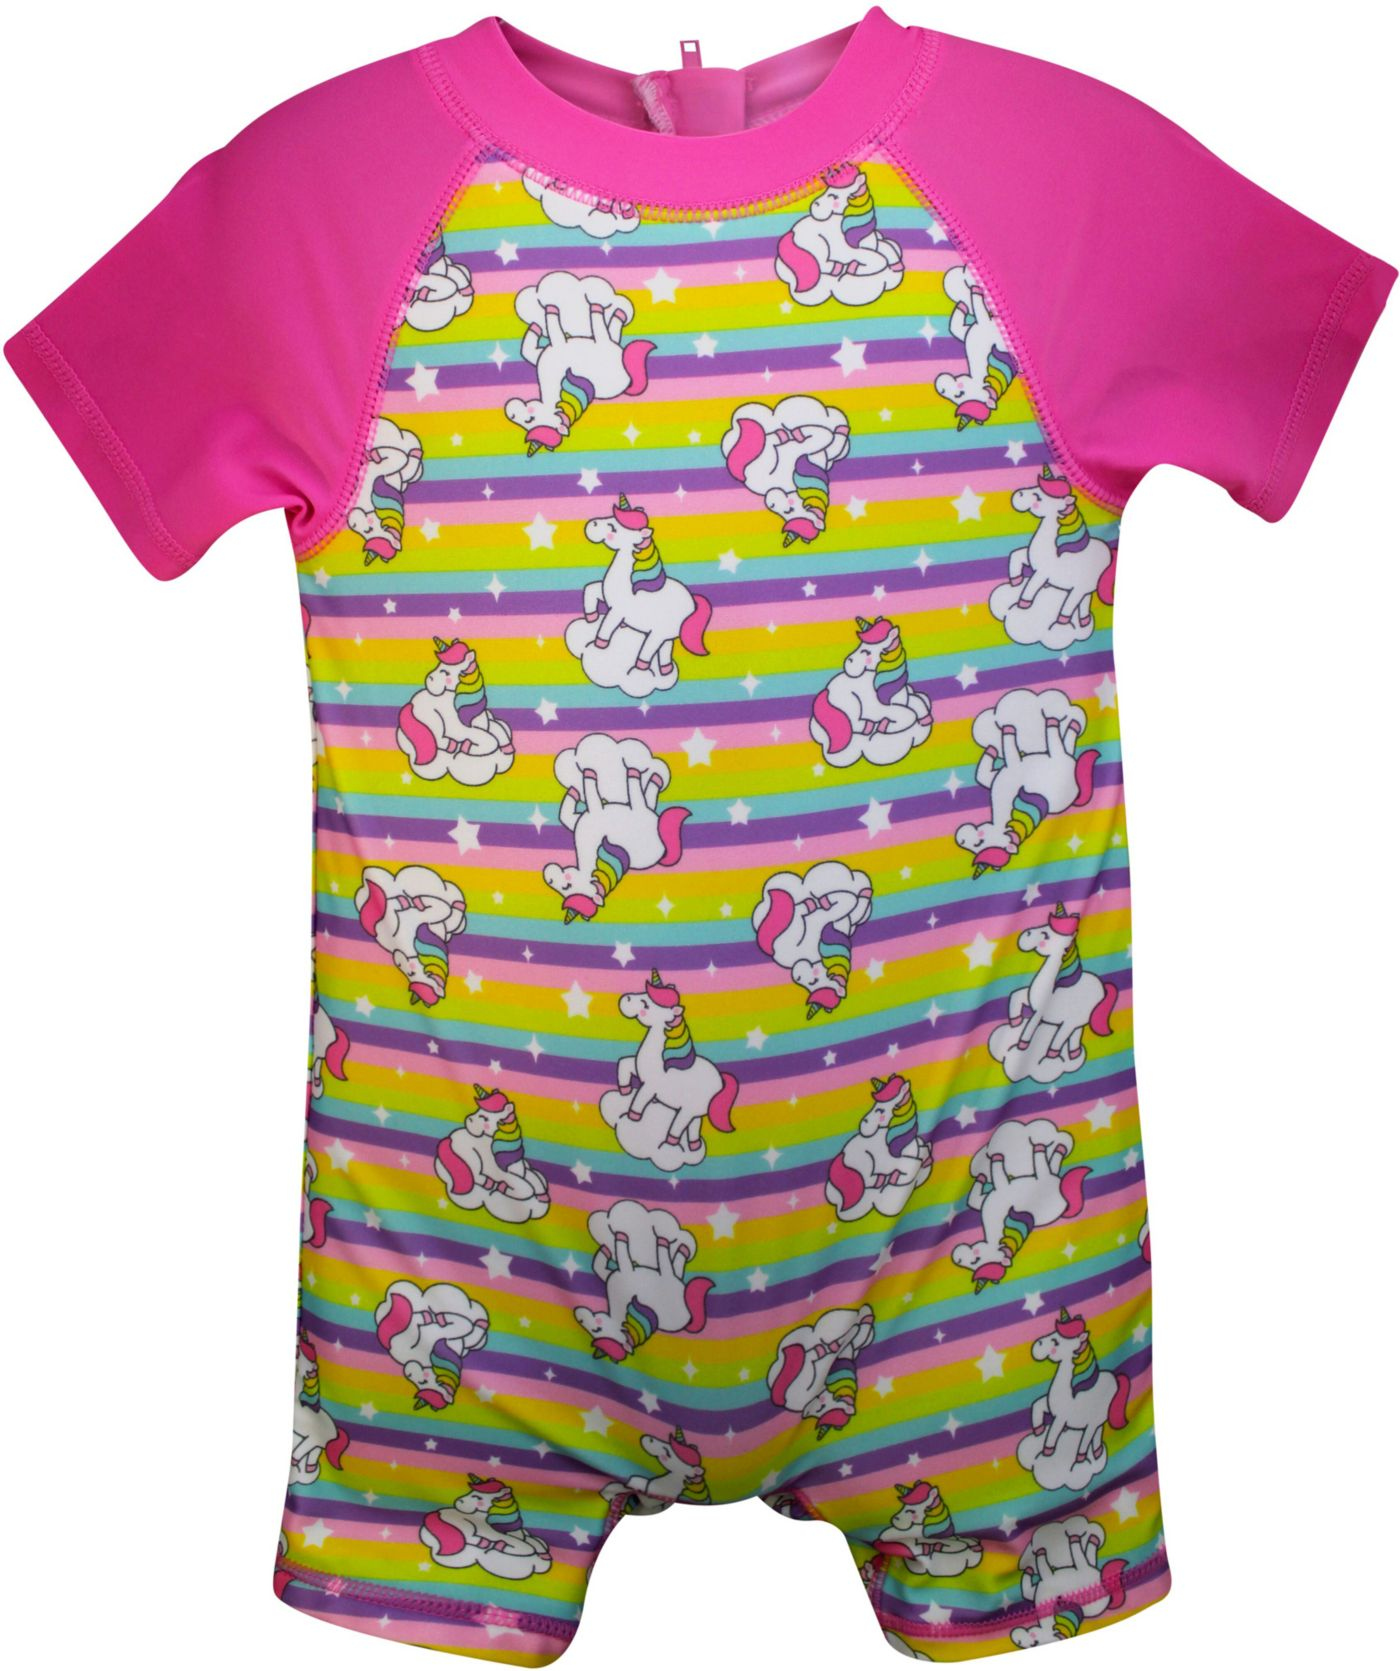 Sol Swim Little Girls' Unicorn Short Sleeve Rash Guard One Piece Swimsuit